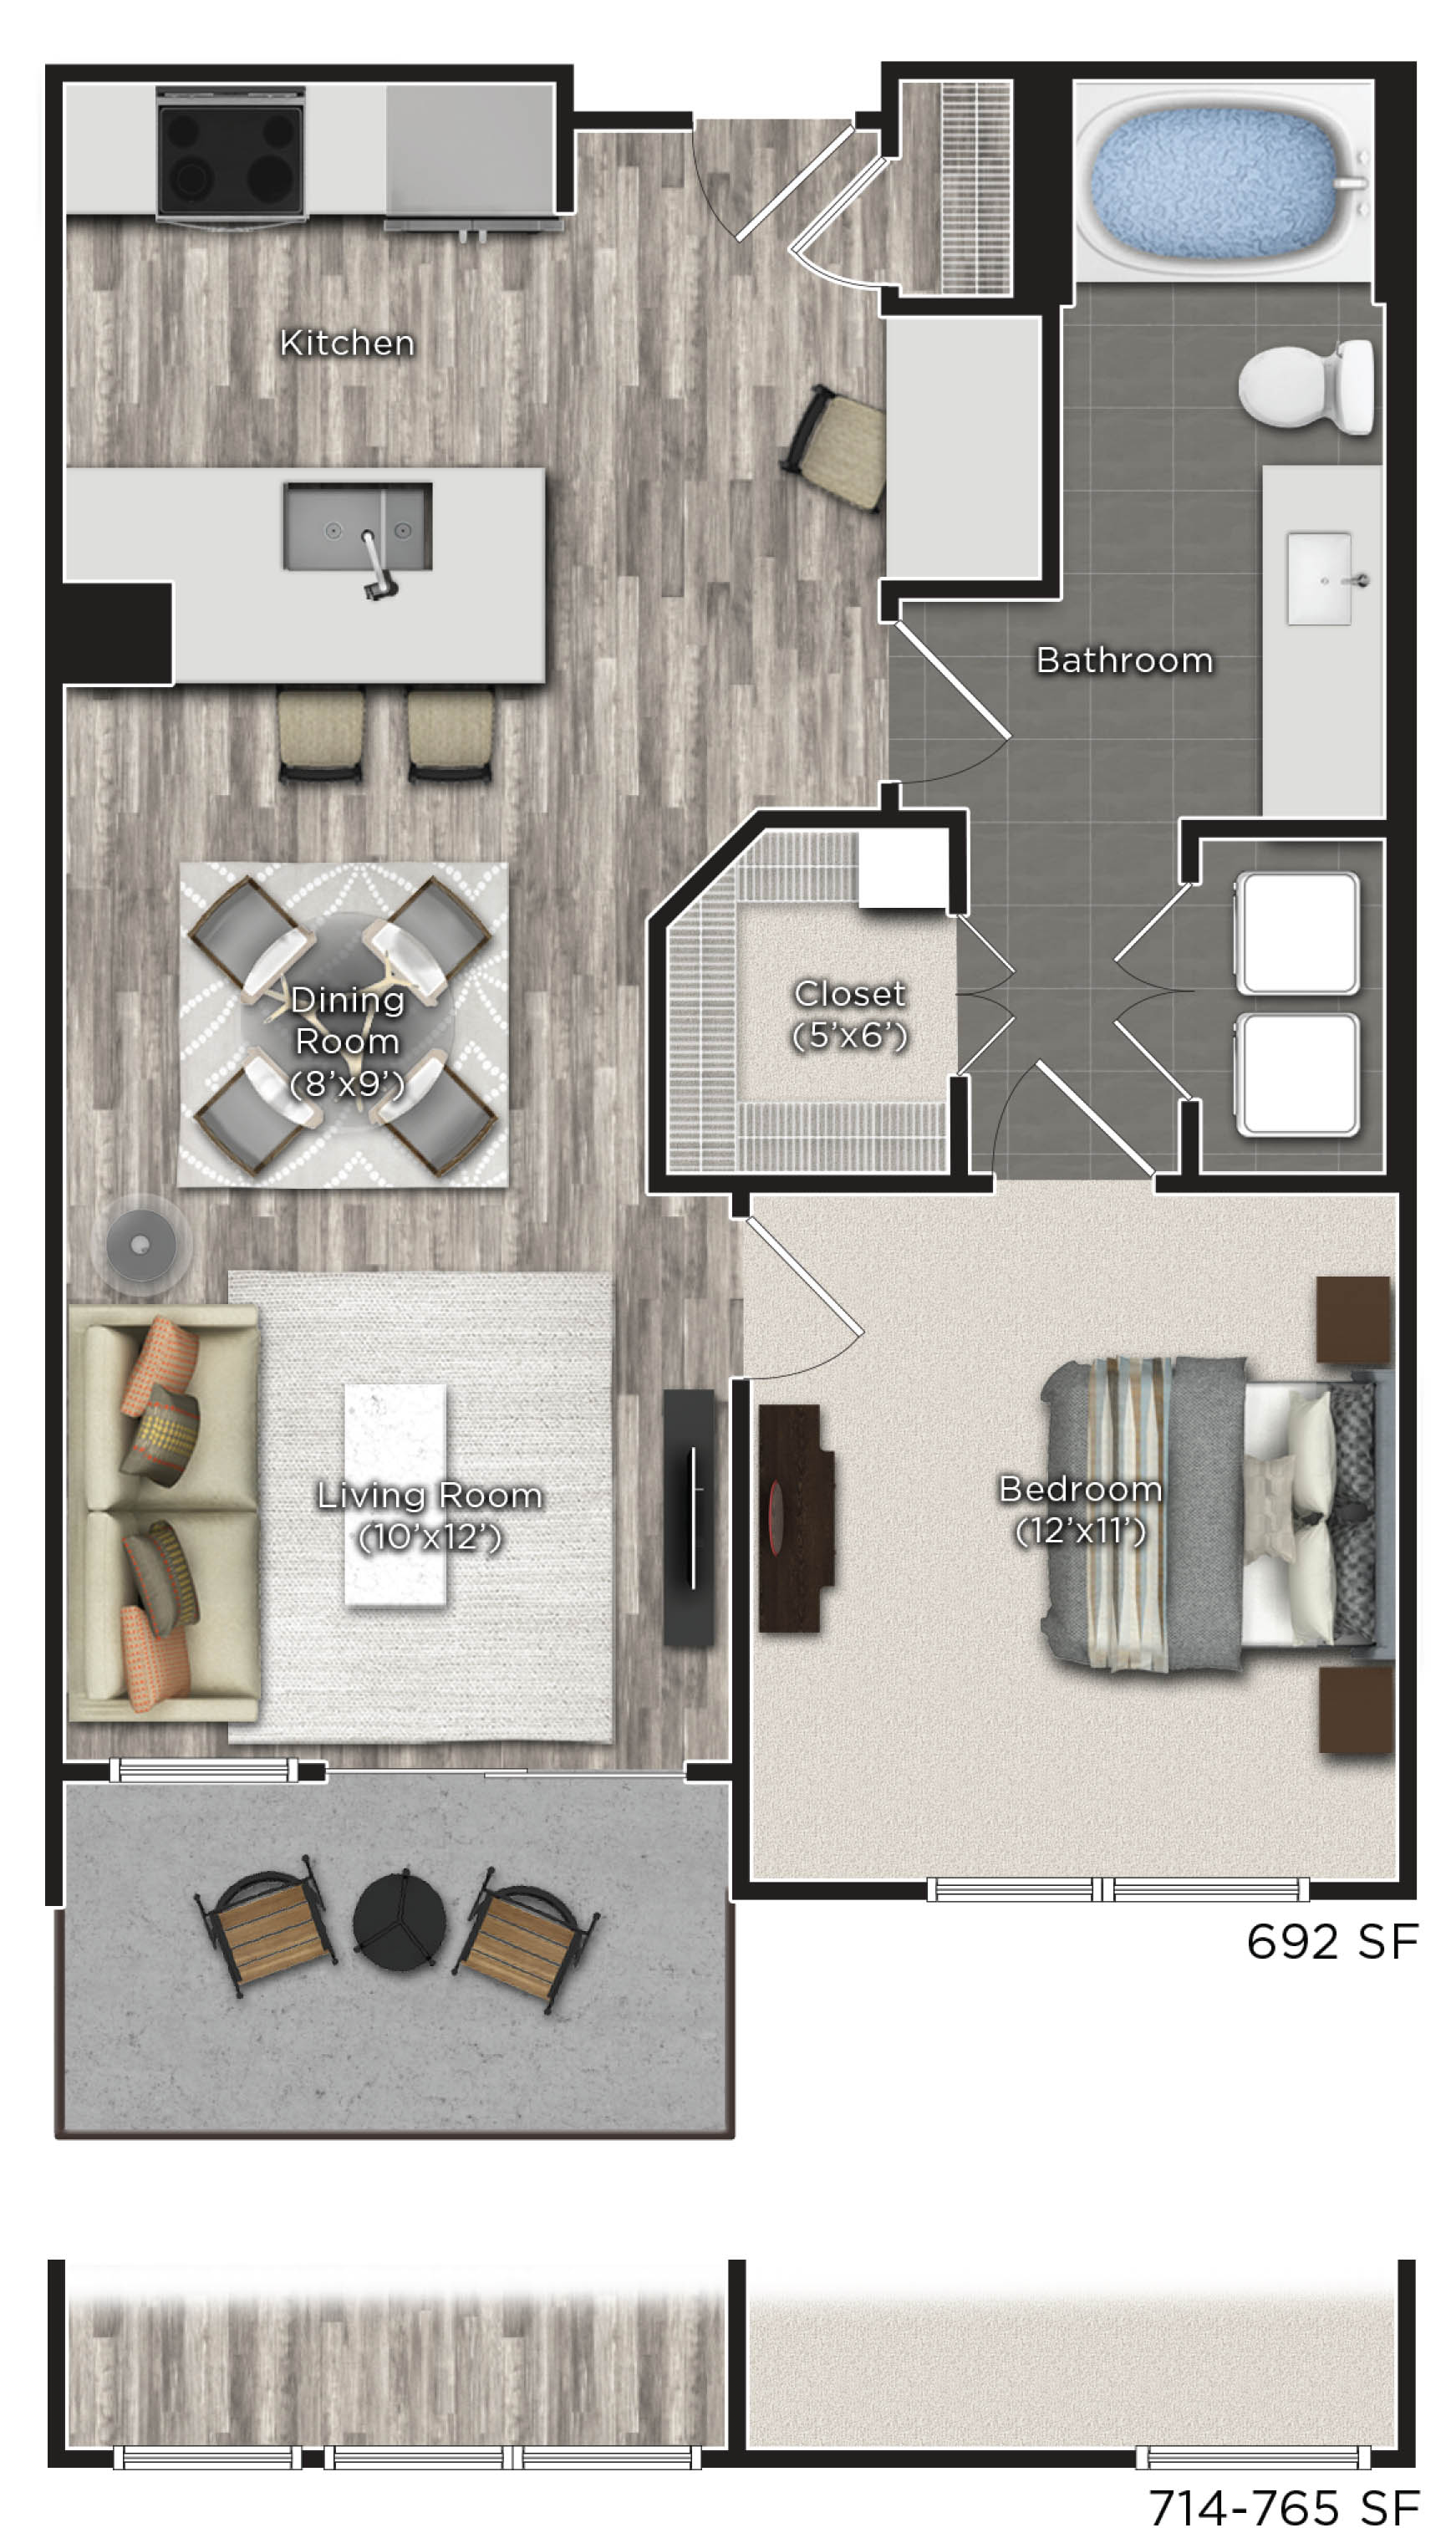 Tens on West - Floorplan - B